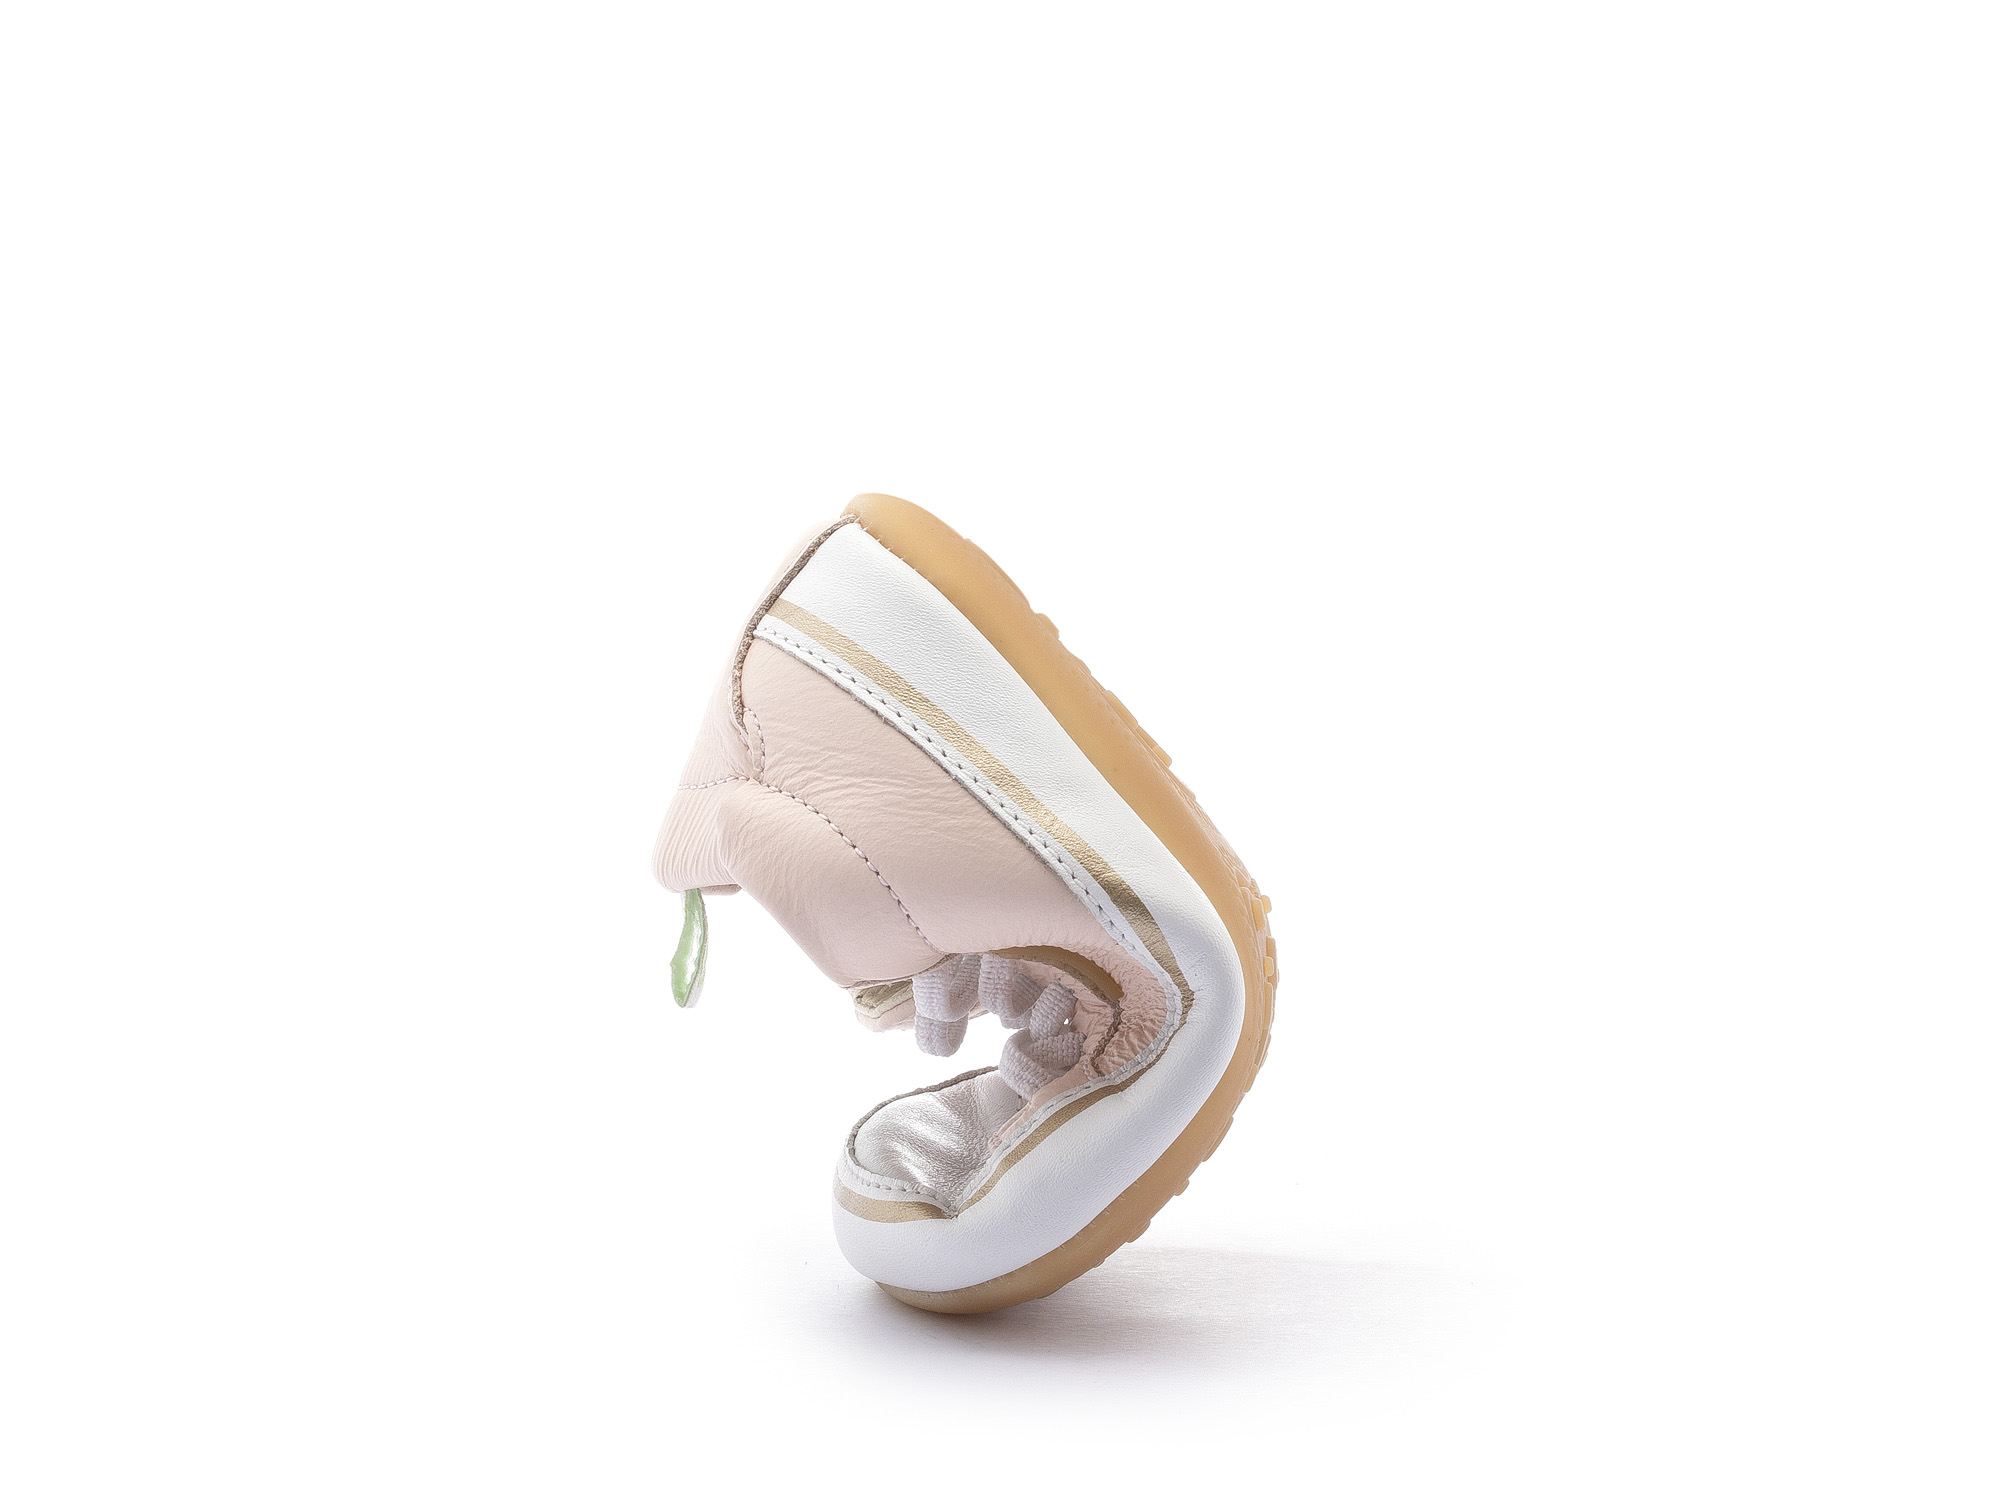 Sneaker Casual Funky Cotton Candy/ White  Baby 0 à 2 anos - 2